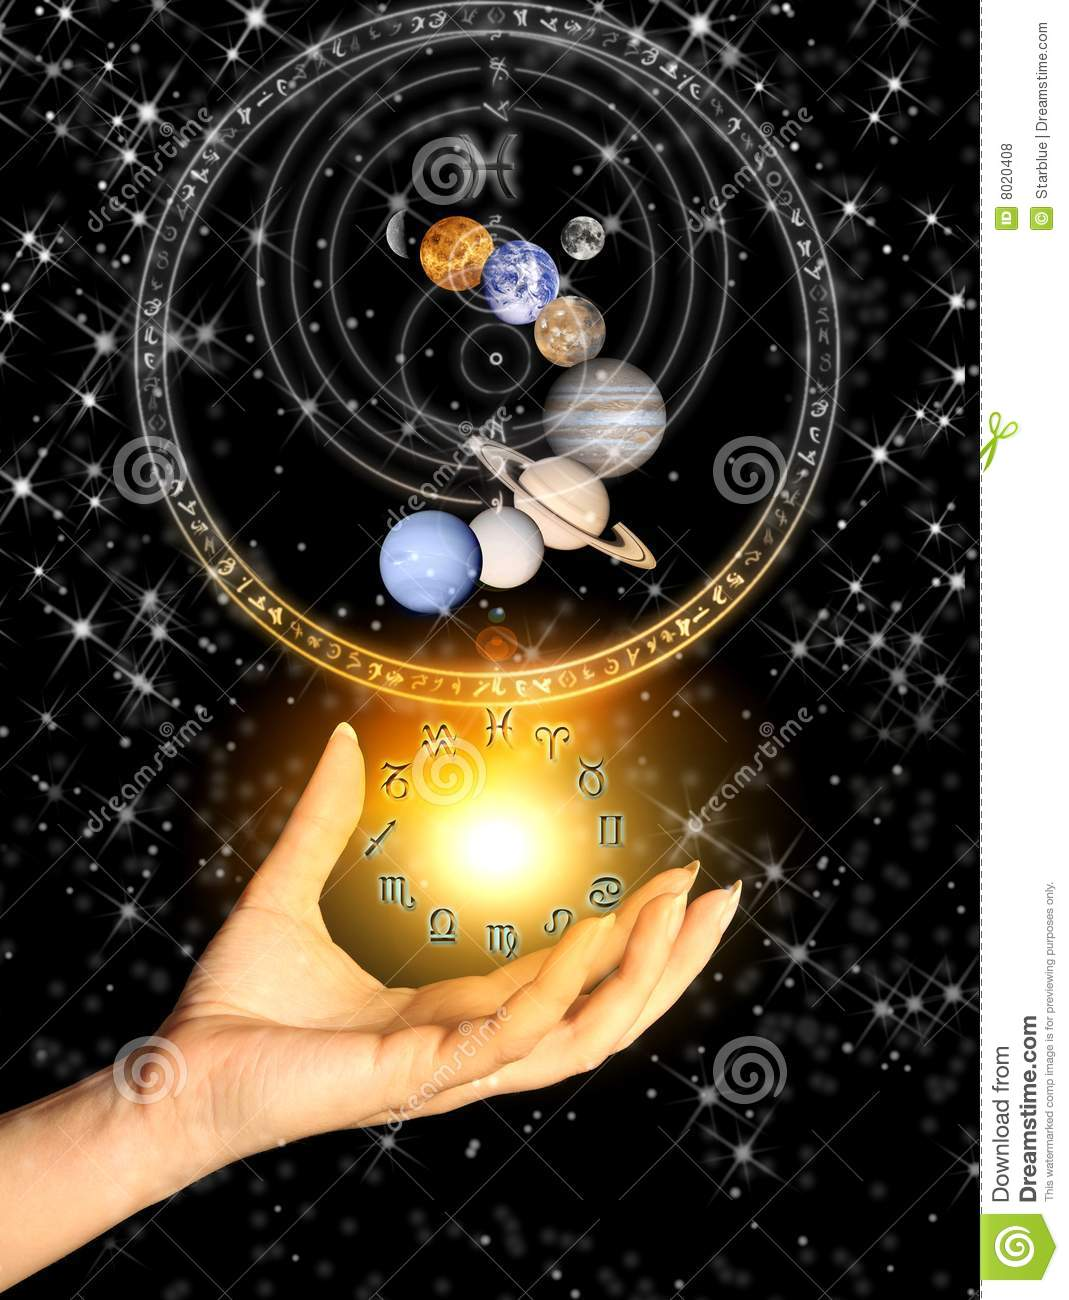 Astrology Royalty Free Stock Photos Image 8020408